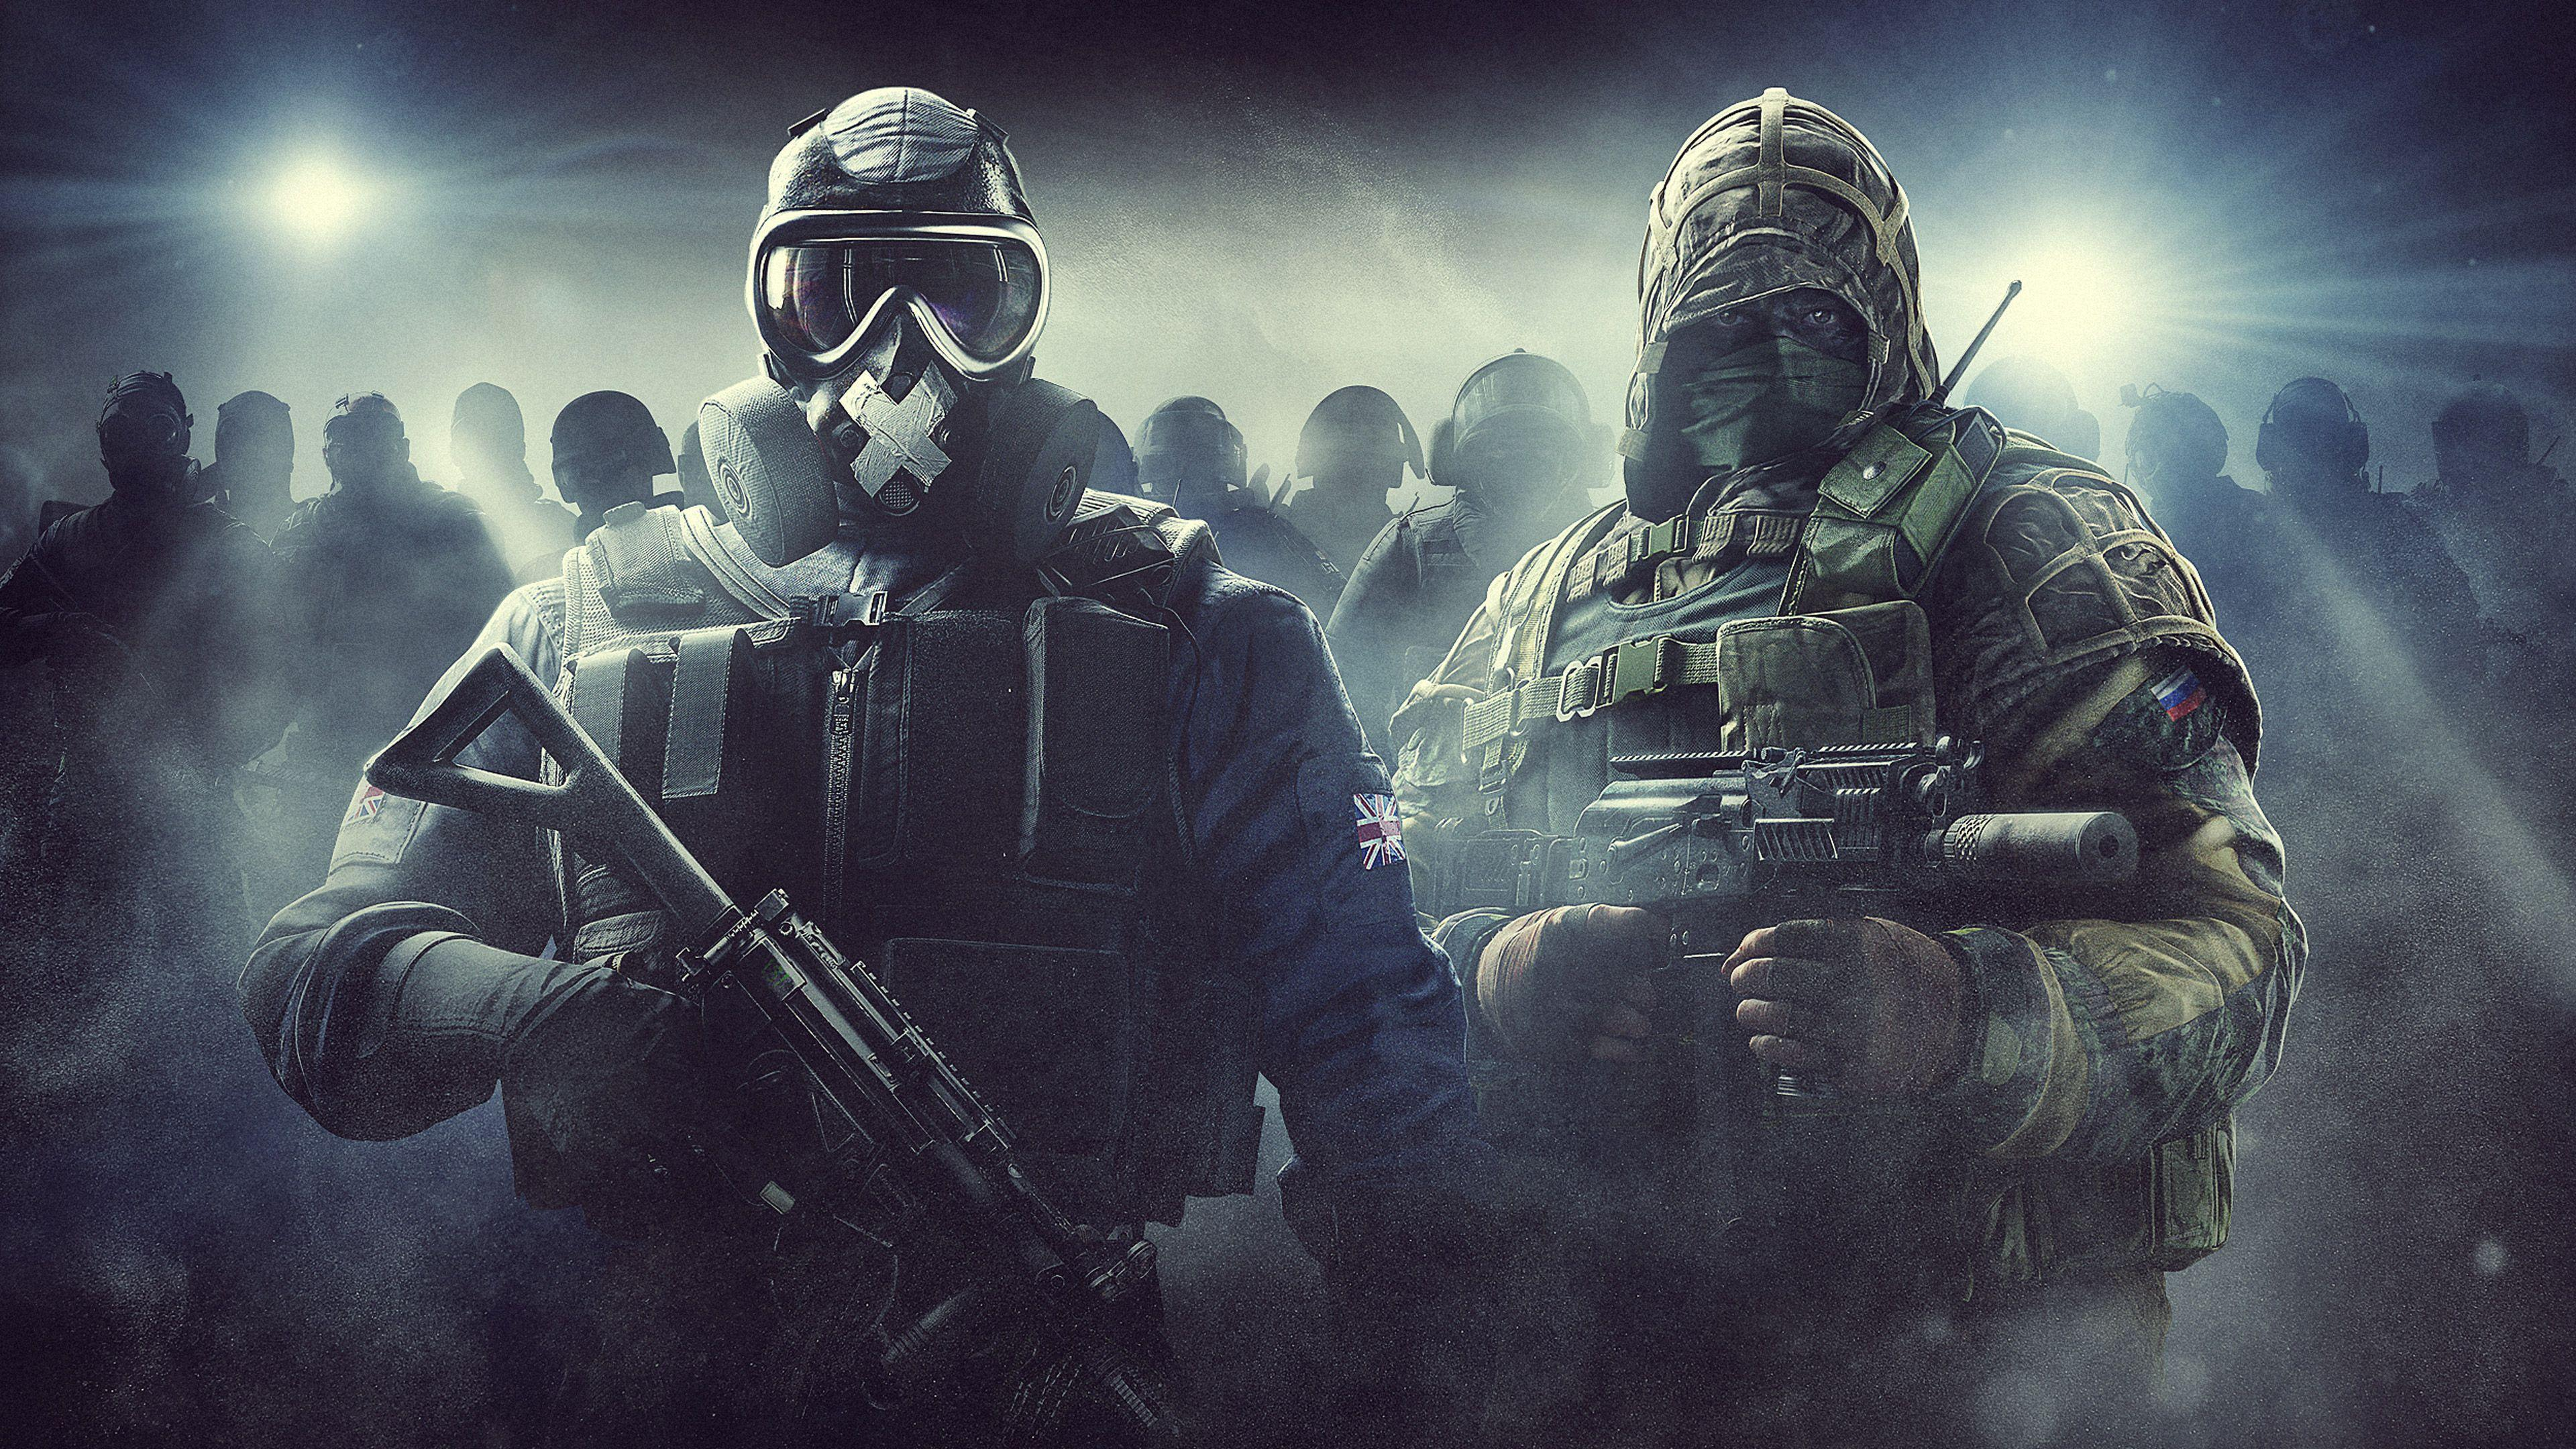 Tom Clancys Rainbow Six Siege Hd Wallpapers Wallpaper Cave